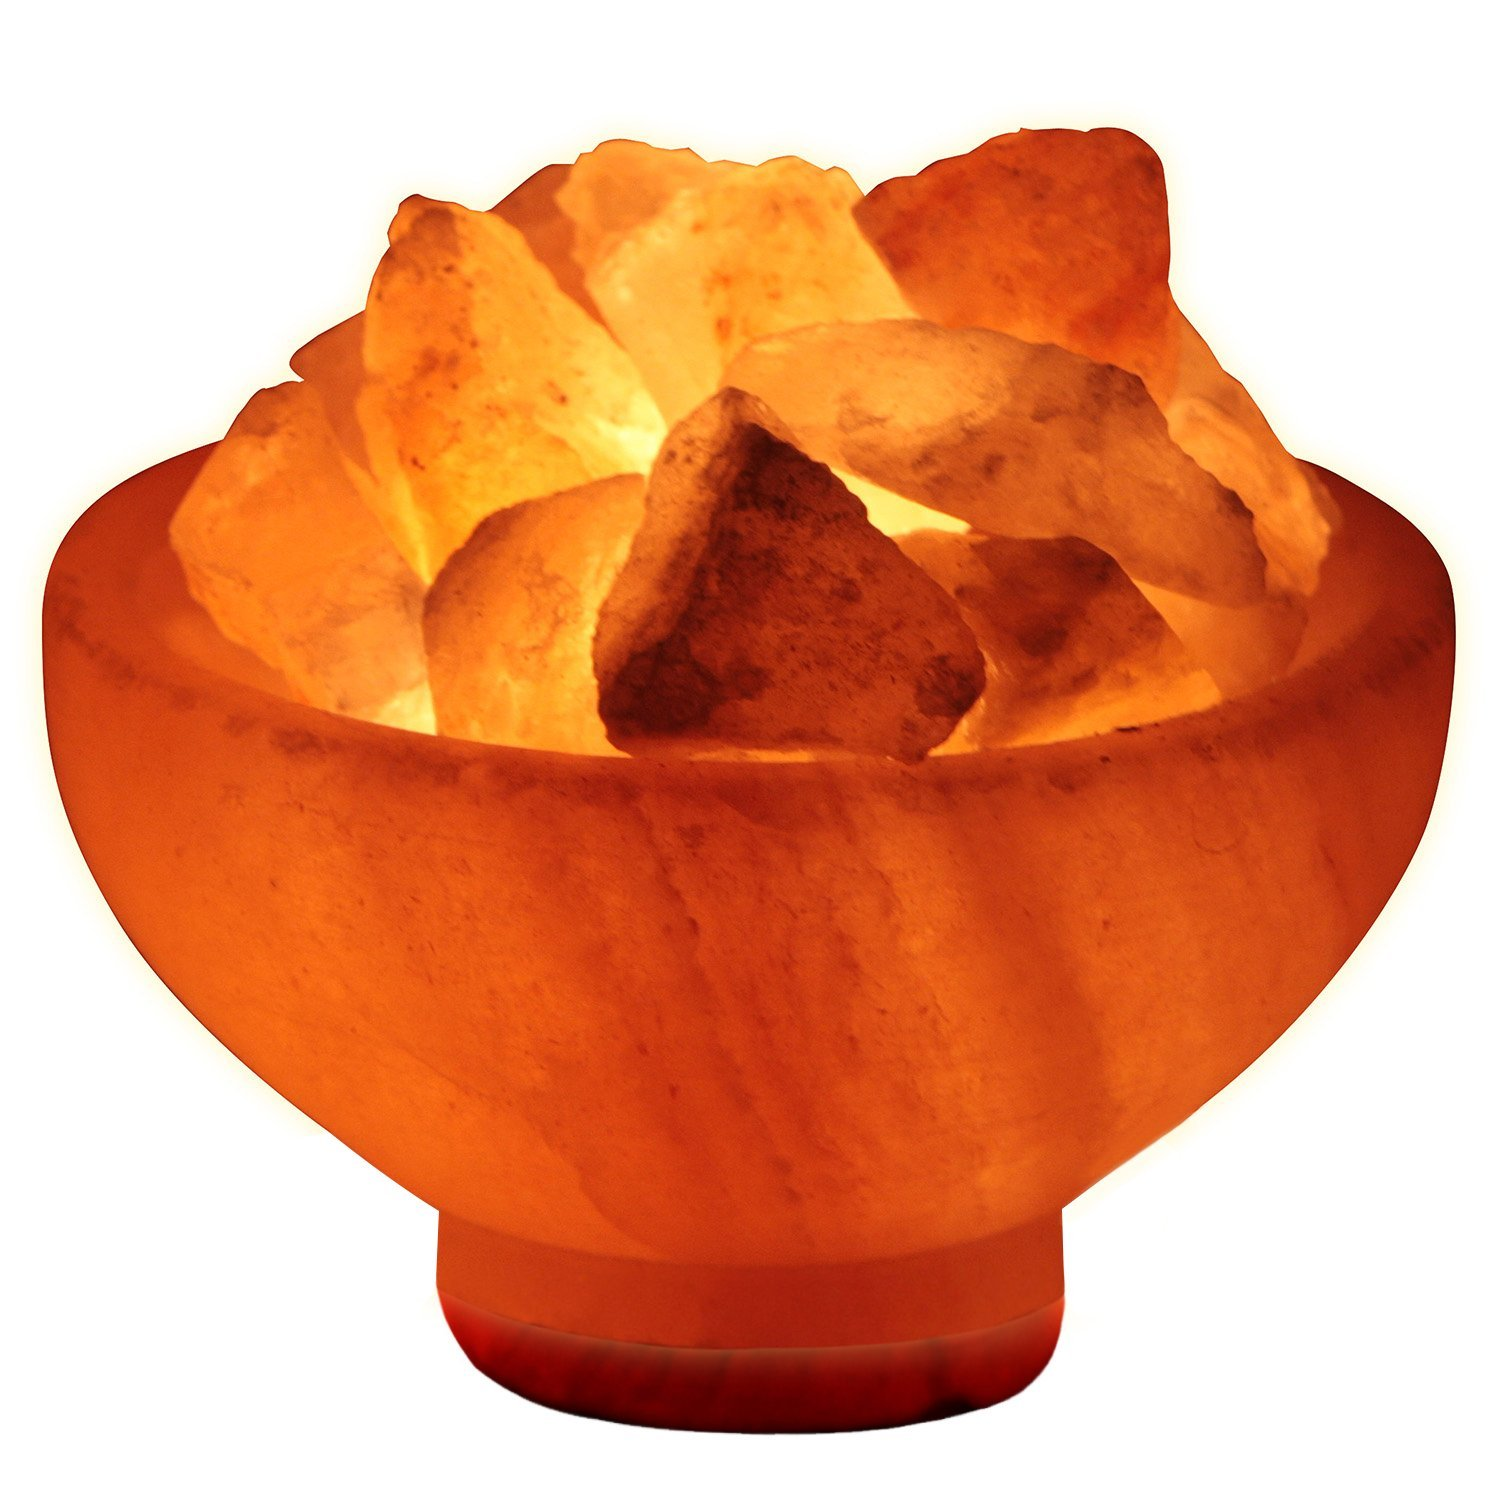 Crystal Allies Gallery Natural Himalayan Salt Fire Bowl Lamp with Rough Salt Chunks & Dimmable Switch